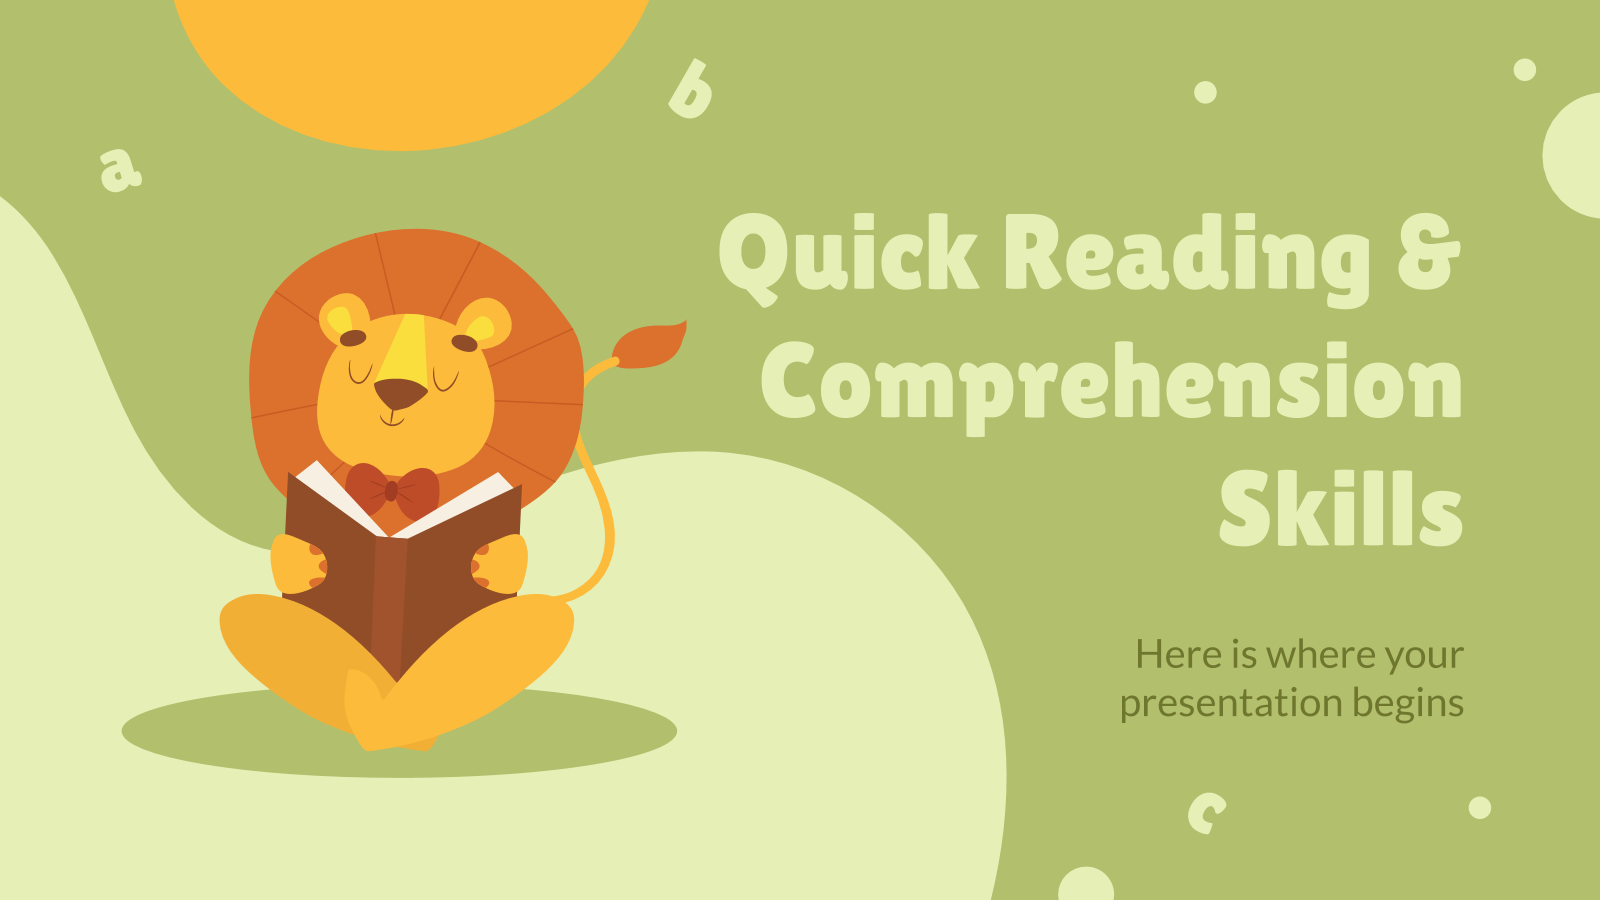 Quick Reading & Comprehension Skills presentation template